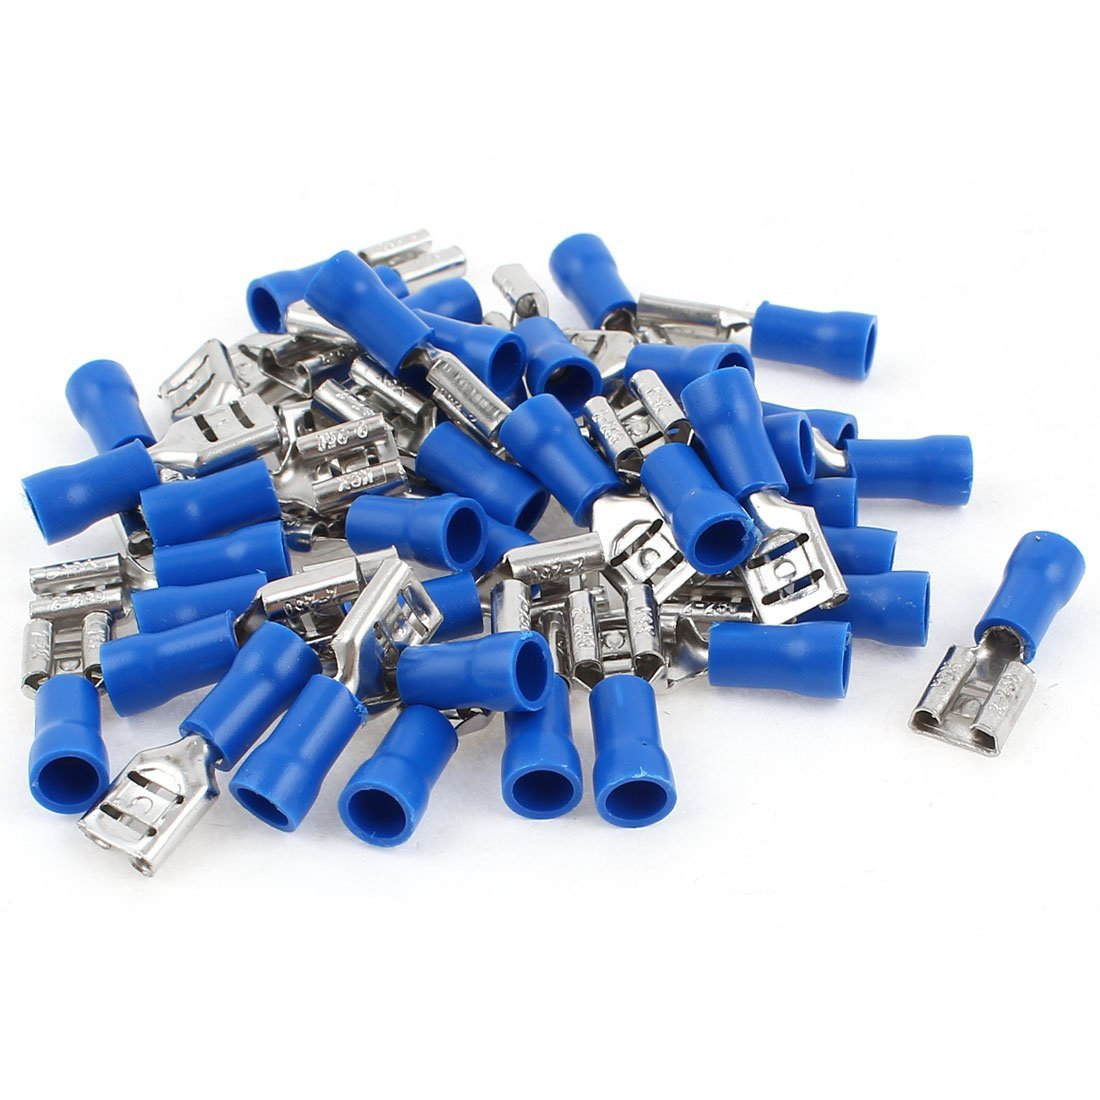 40 Pcs Pre Insulated AWG16-14 Cable Spade Crimp Terminals FDD 2-250 DealMux DLM-B00R1M3SRM